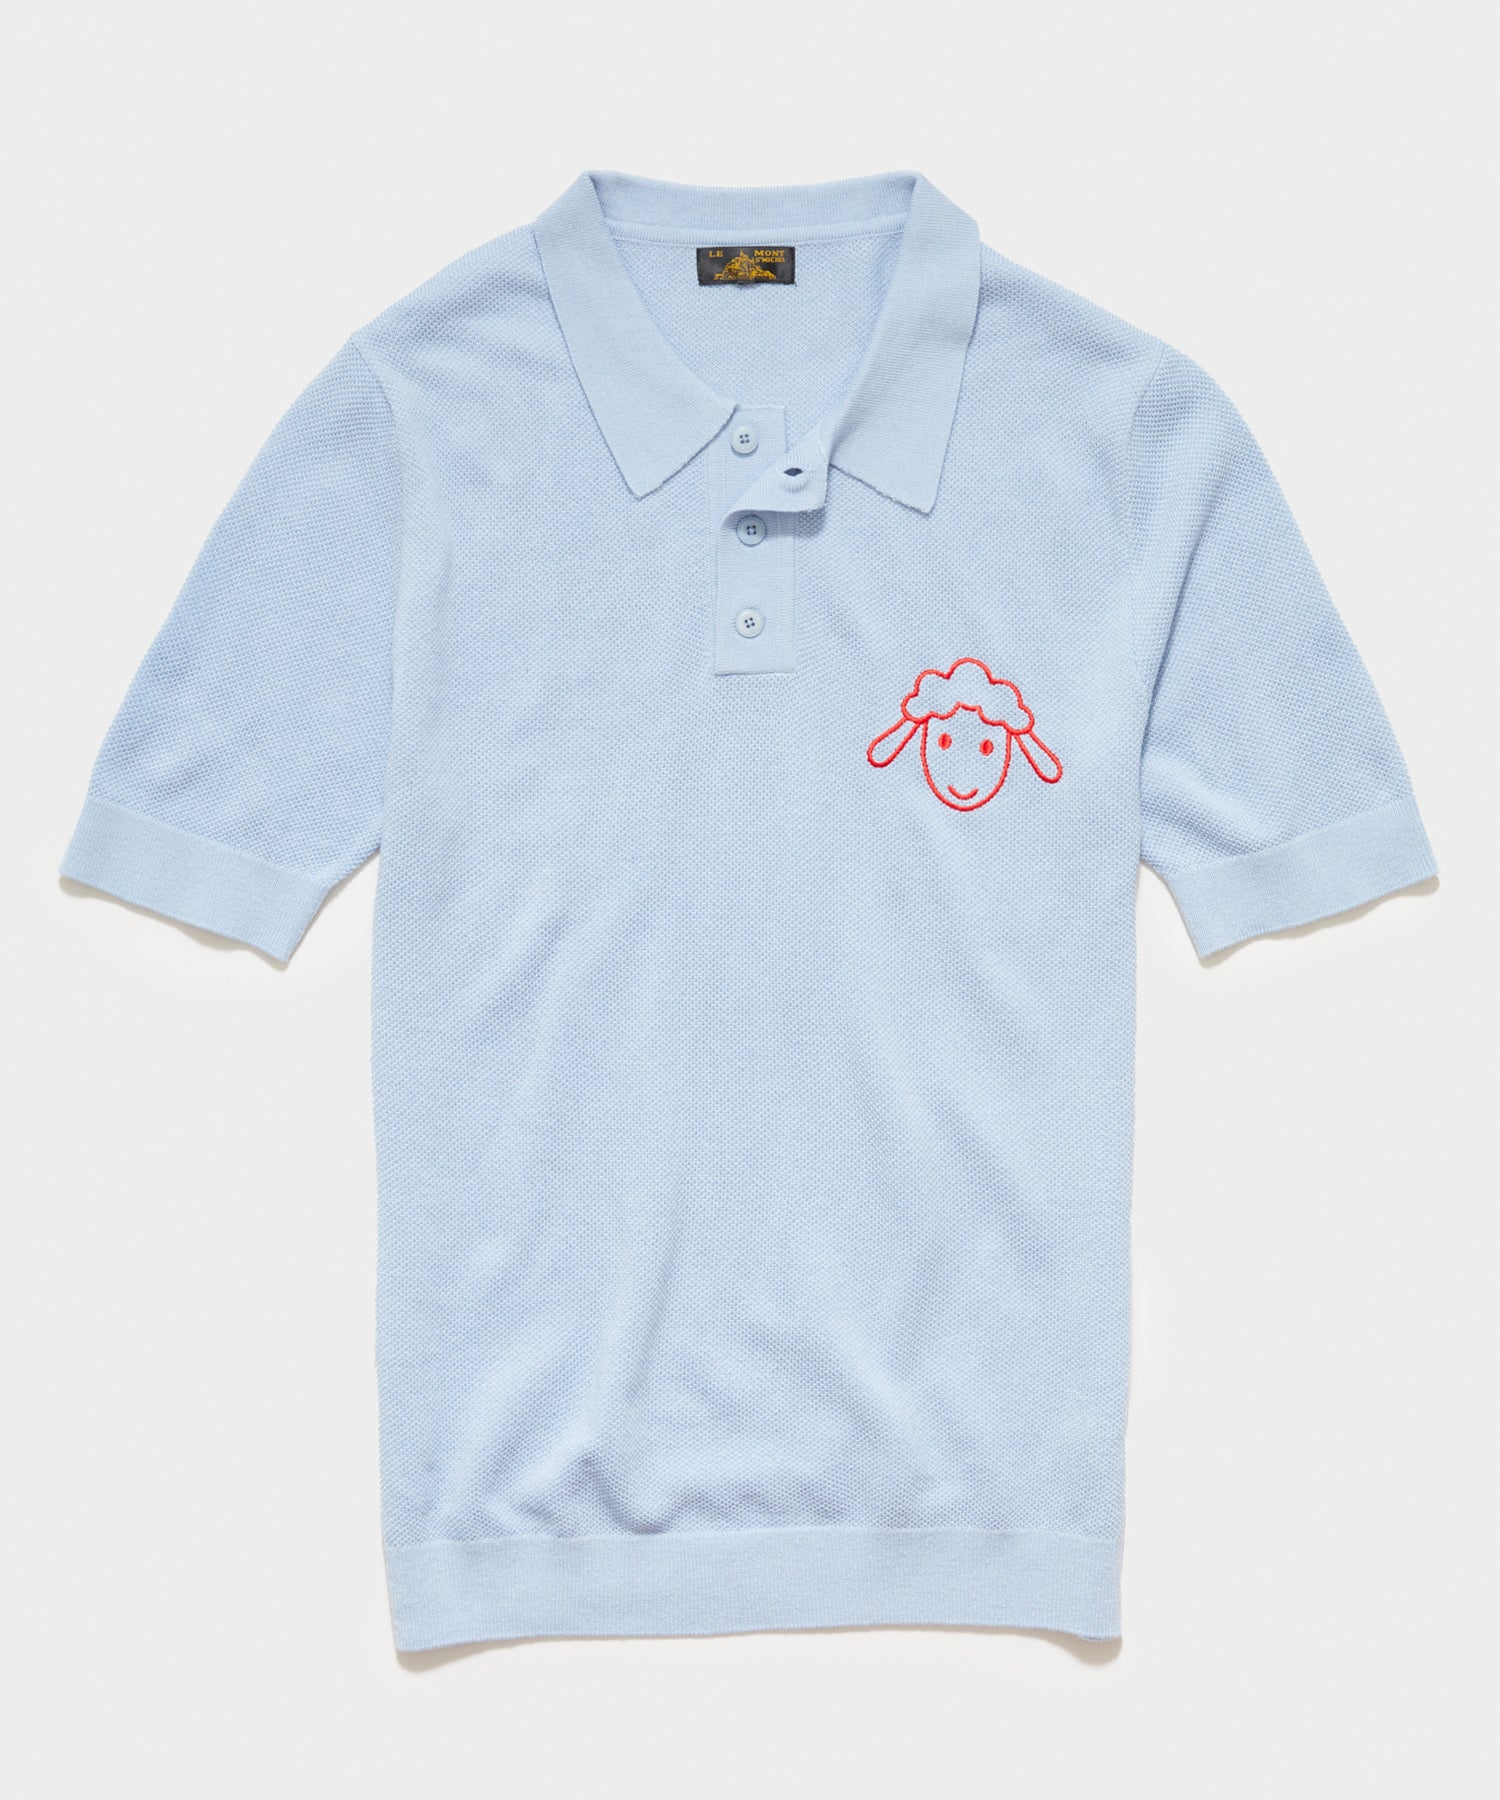 Le Mont St Michel Piqué Lambs Embroidery Sweater Polo in Sky Blue